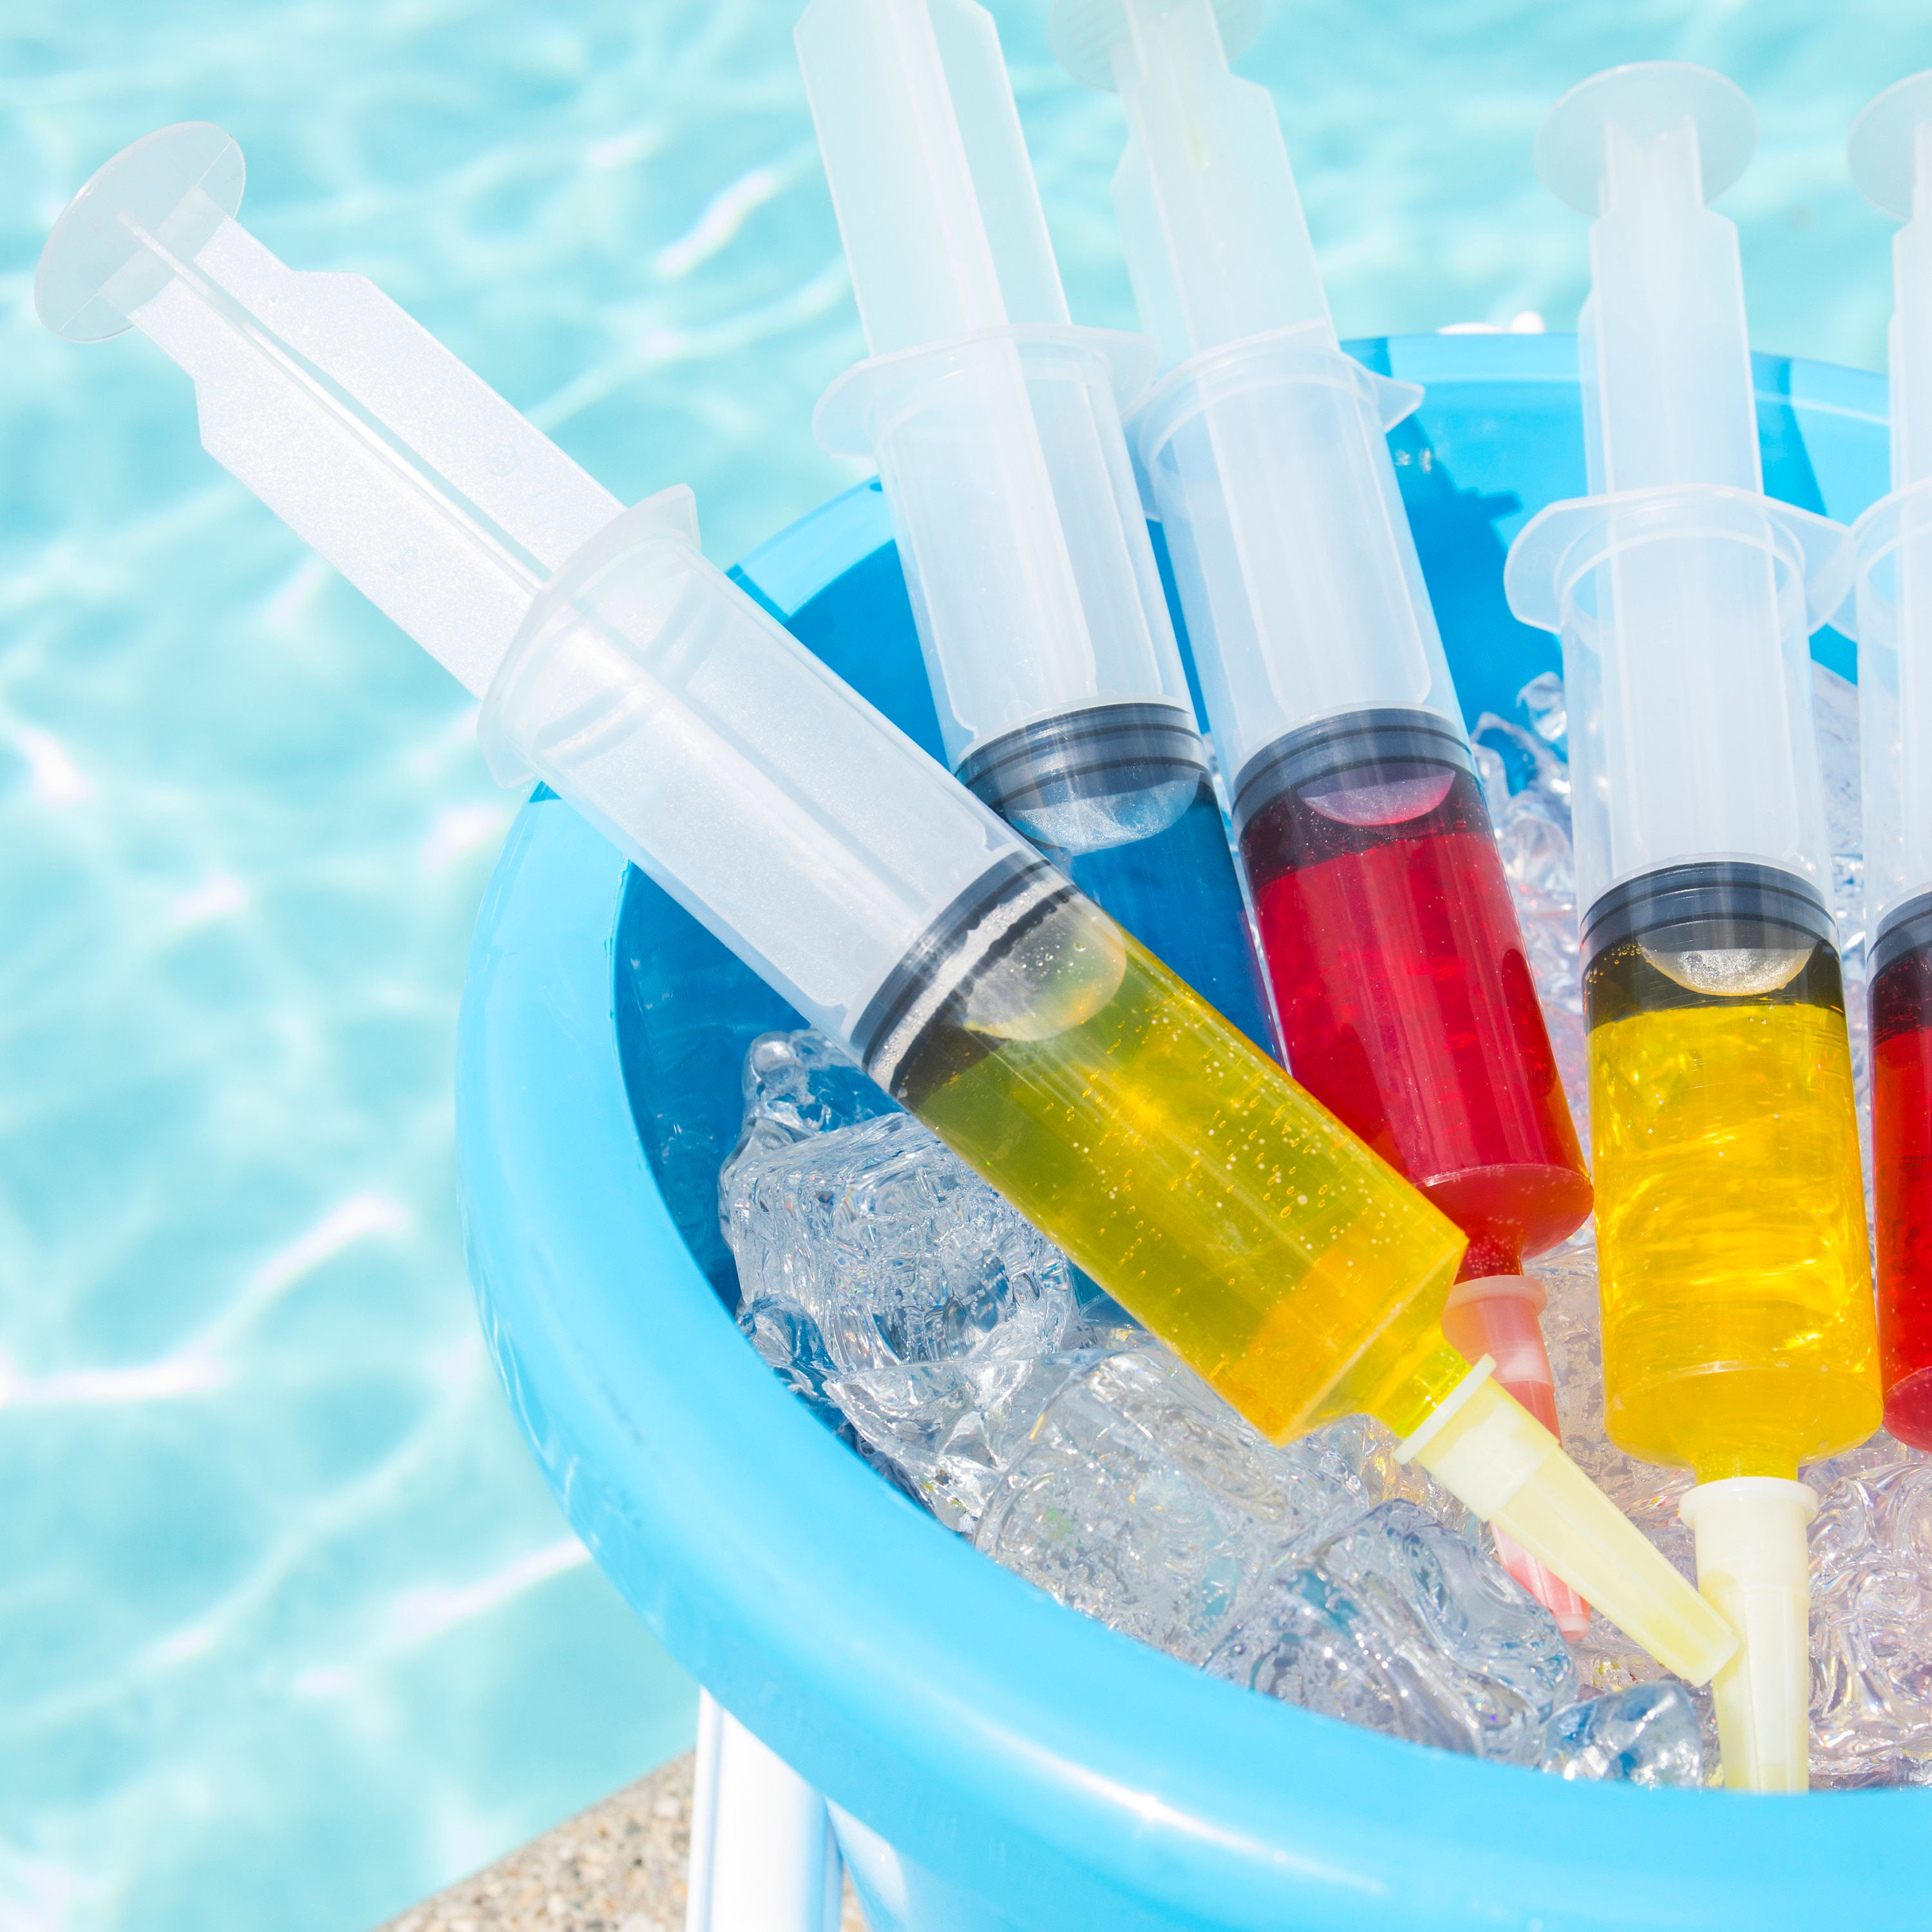 Jello Shot Syringes And Plastic Party Cups With Lids